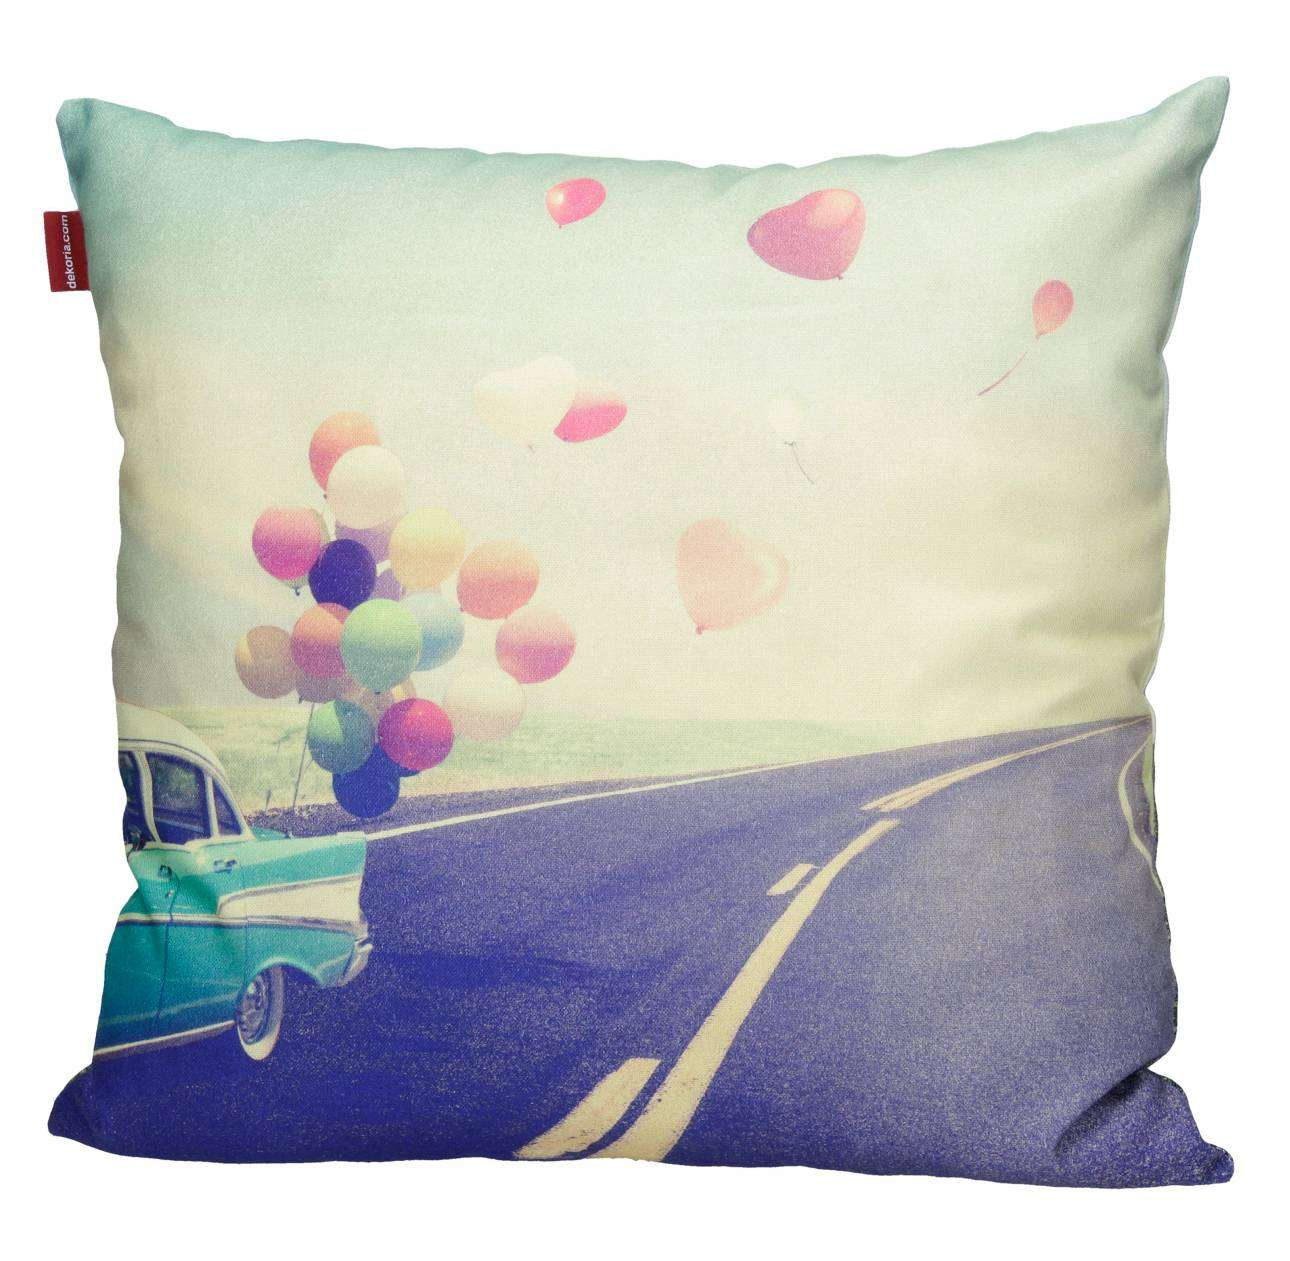 Balloons Print Cushion Cover 45x45cm